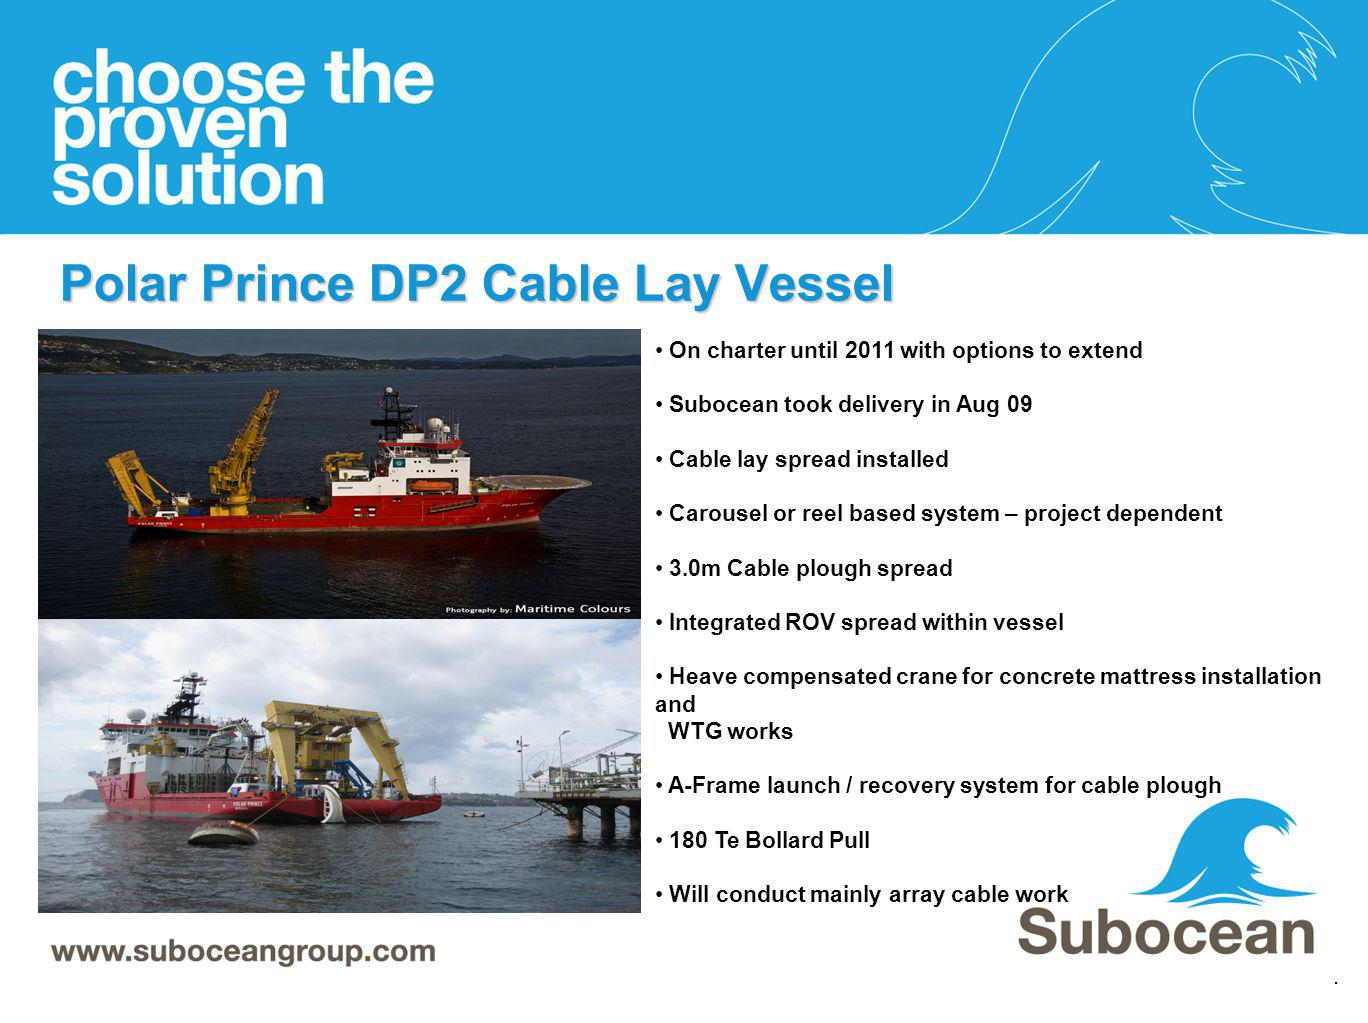 Polar Prince DP2 Cable Lay Vessel